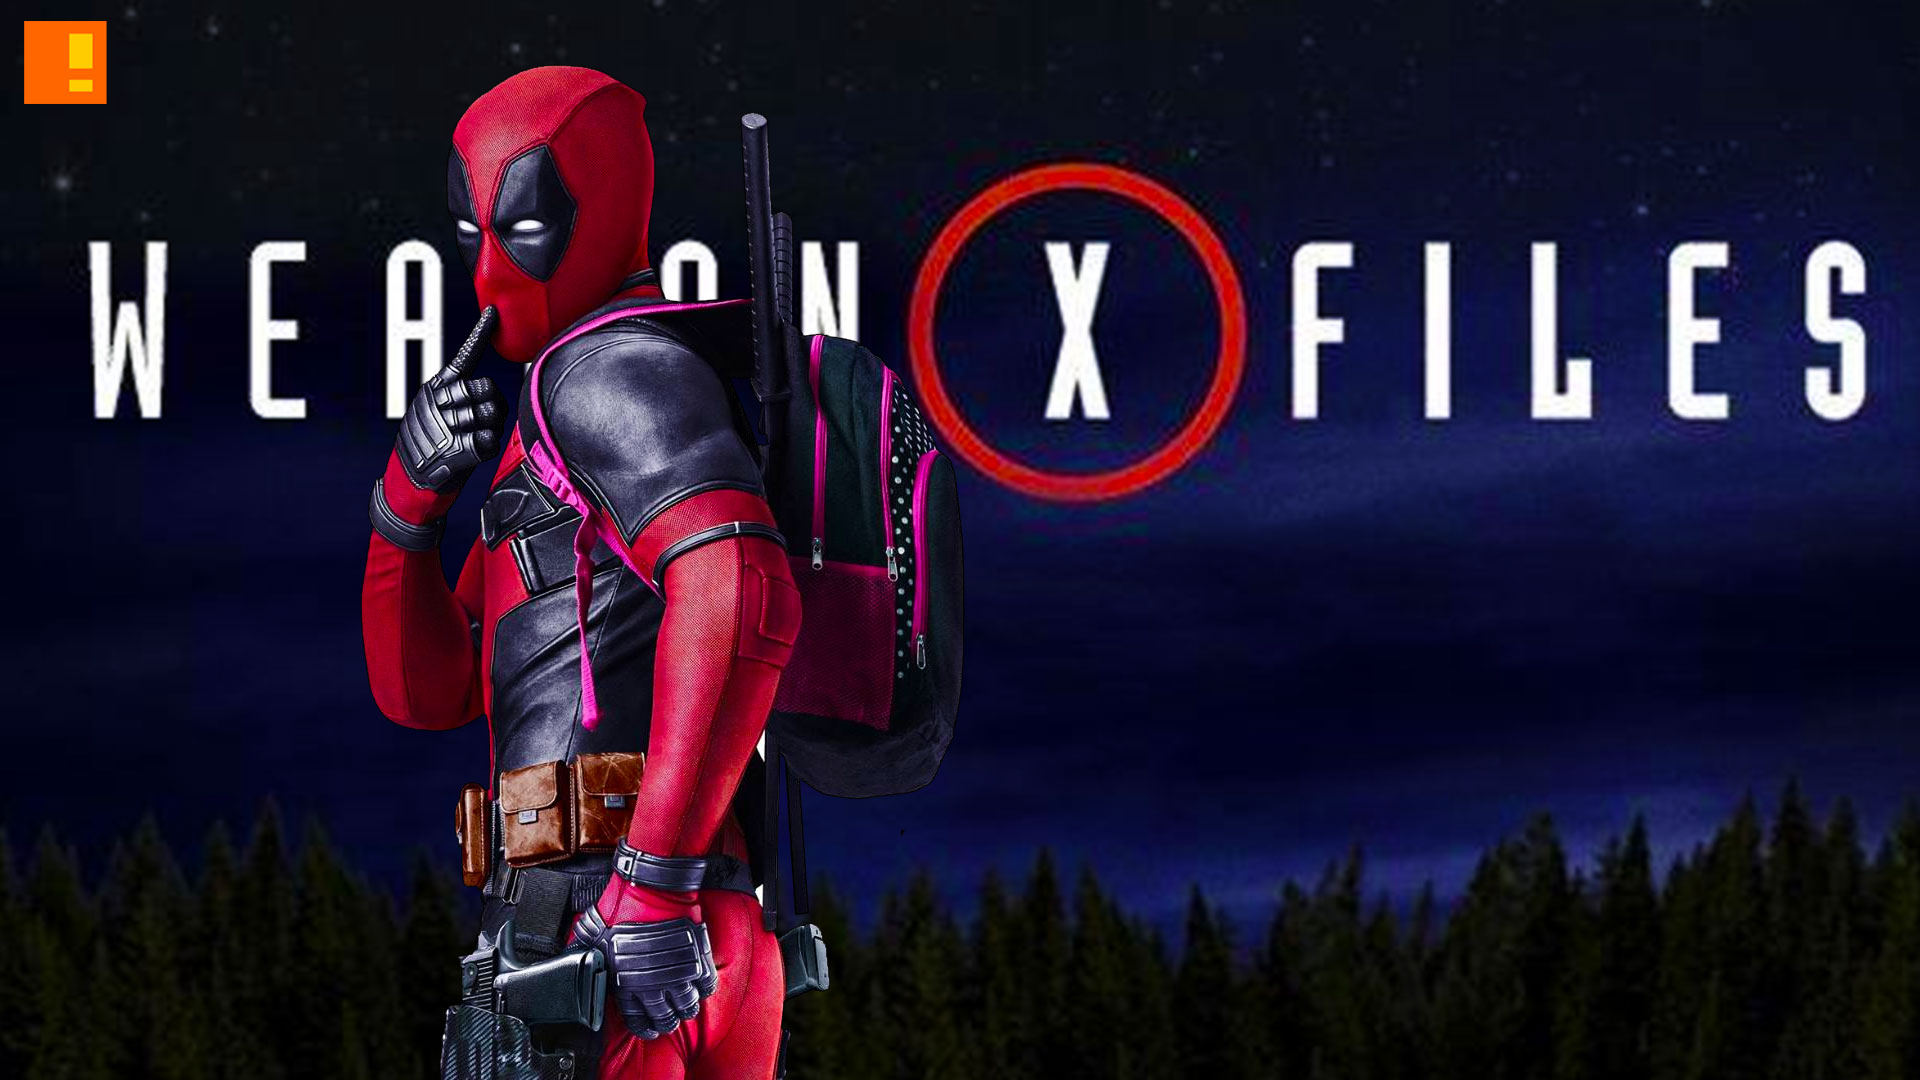 deadpool Weapon X files. 20th century fox. marvel. the action pixel. @theactionpixel